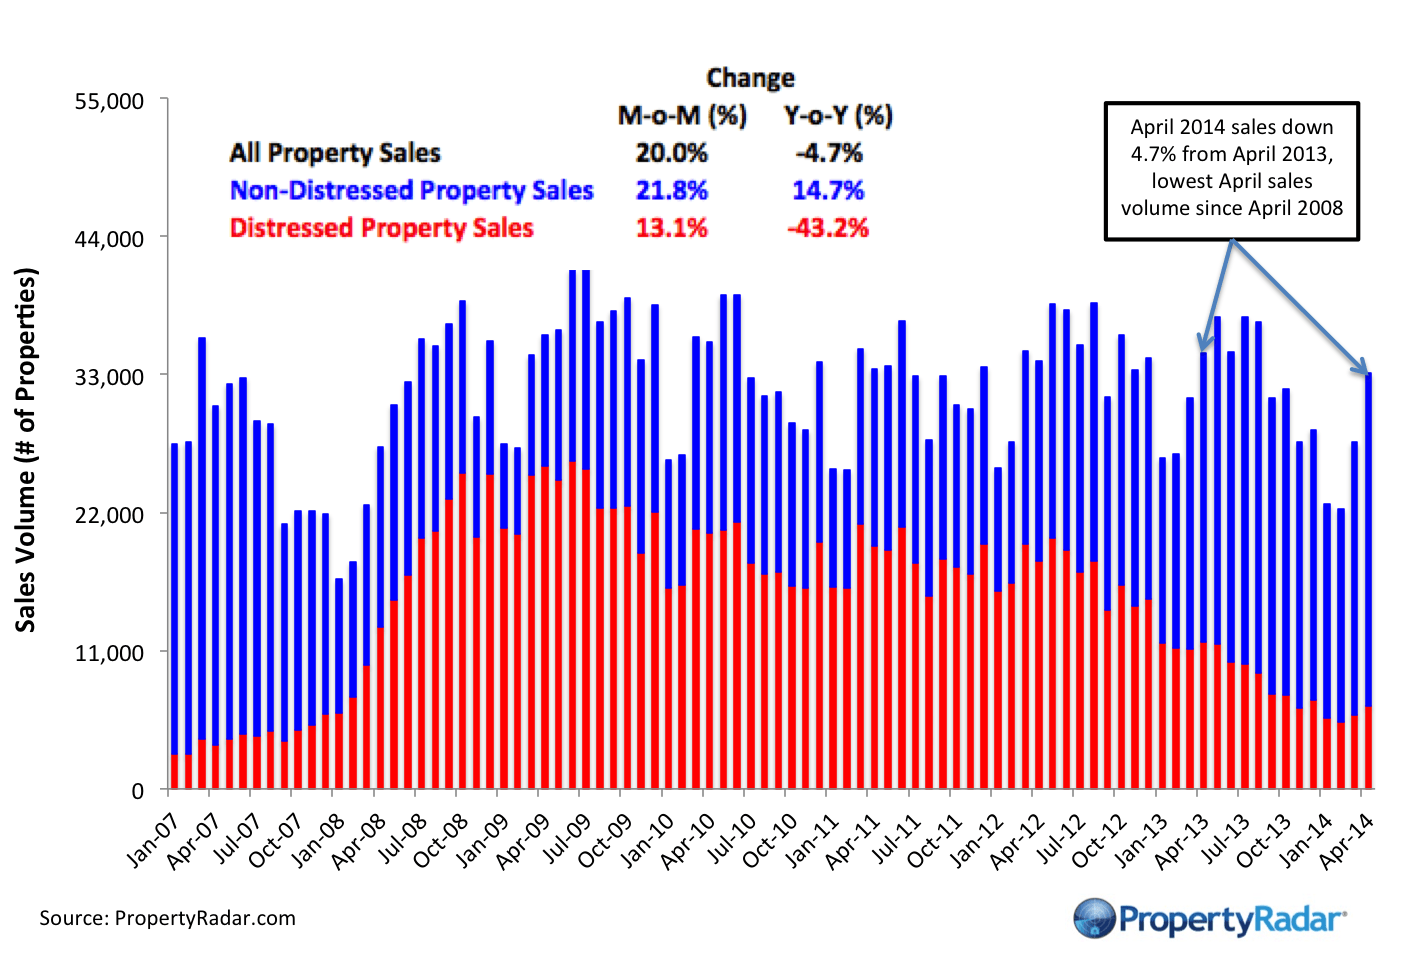 April Home Sales Gain 20 Percent For the Month ,Year-to-Date Sales Lowest Since 2008